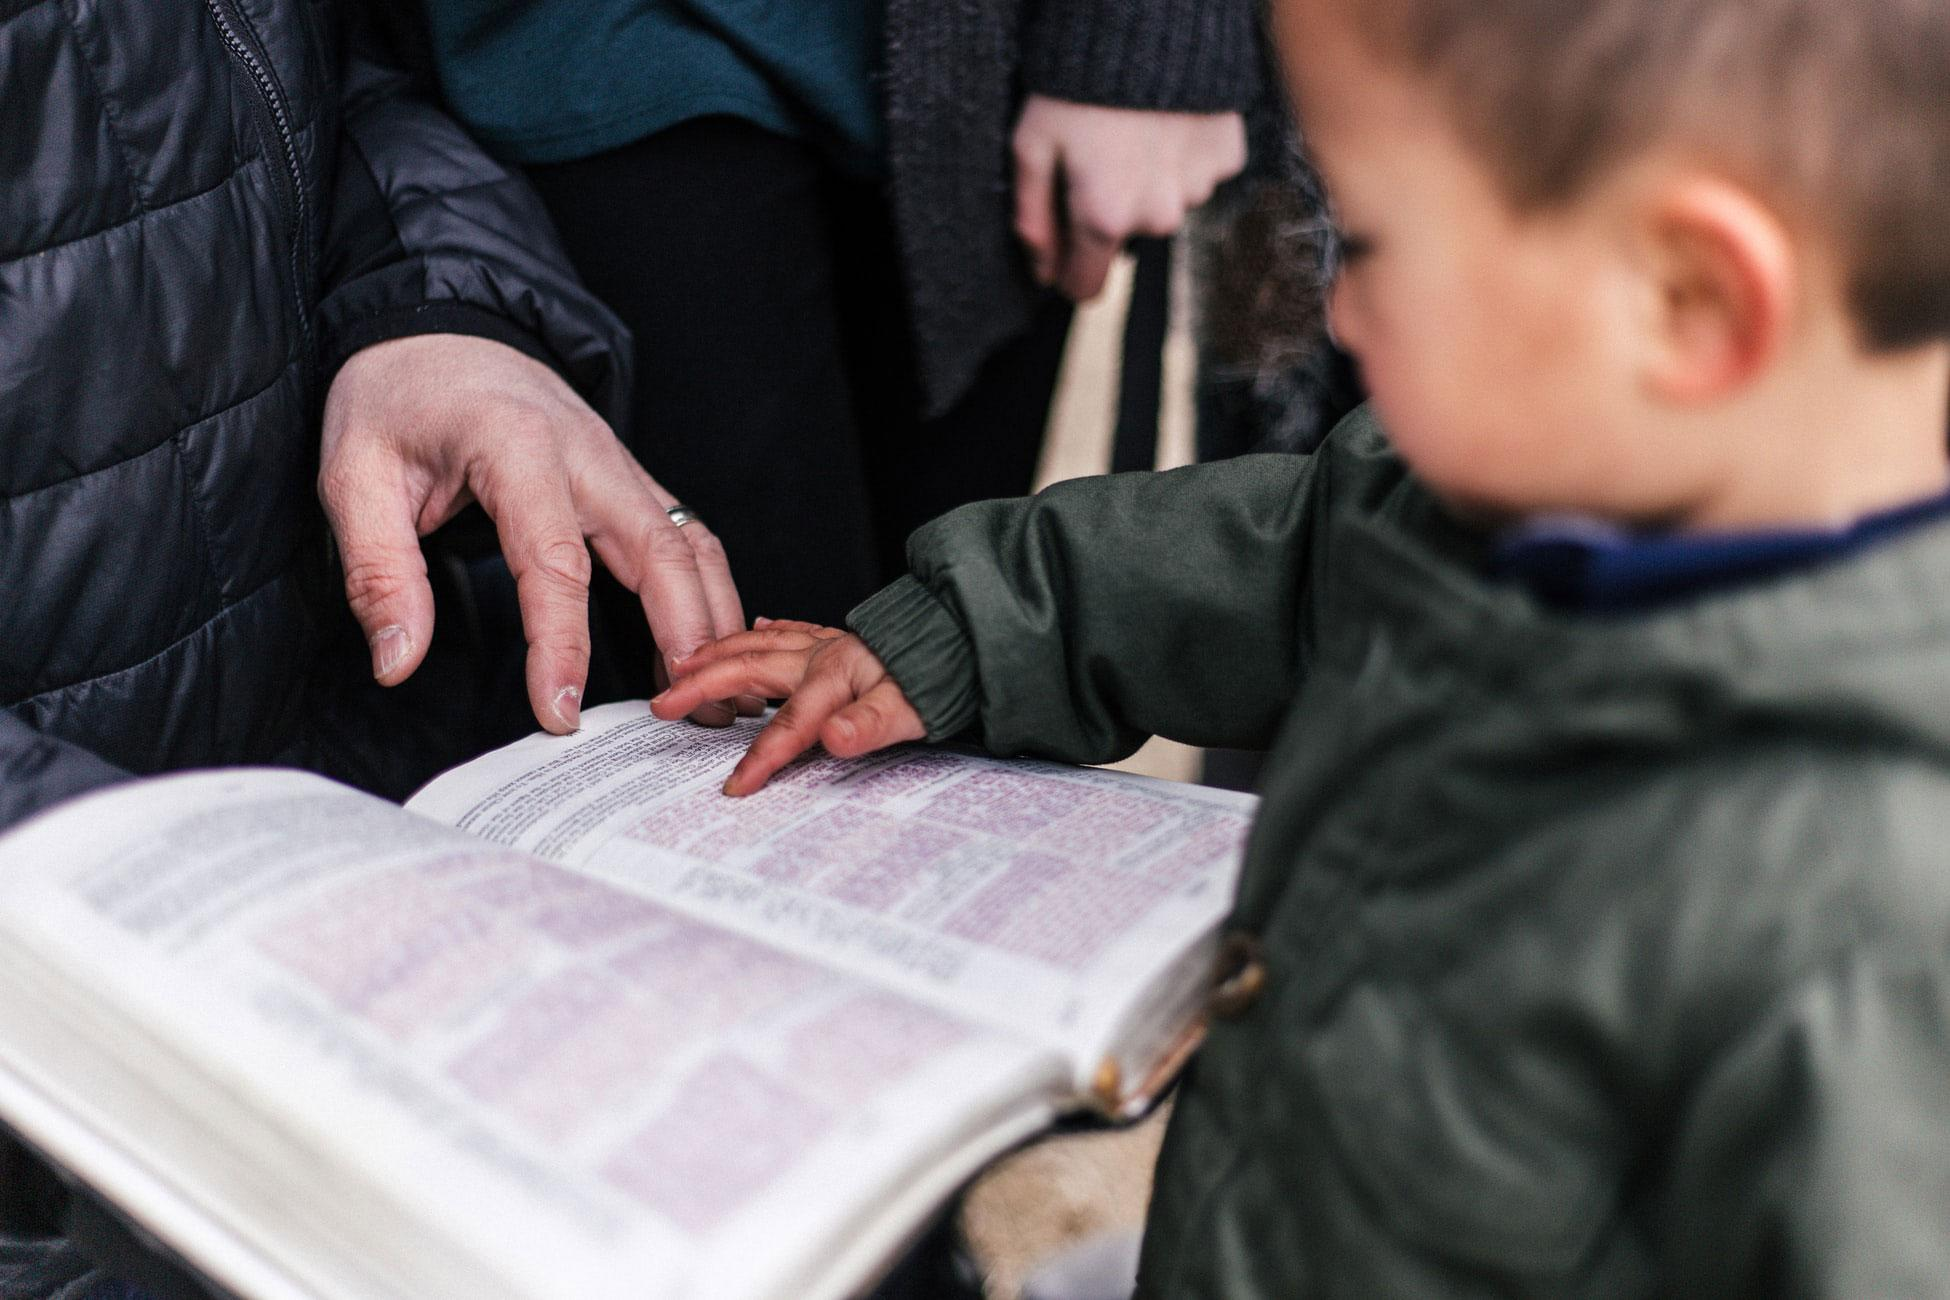 A toddler points at passages in a Bible held by an adult.